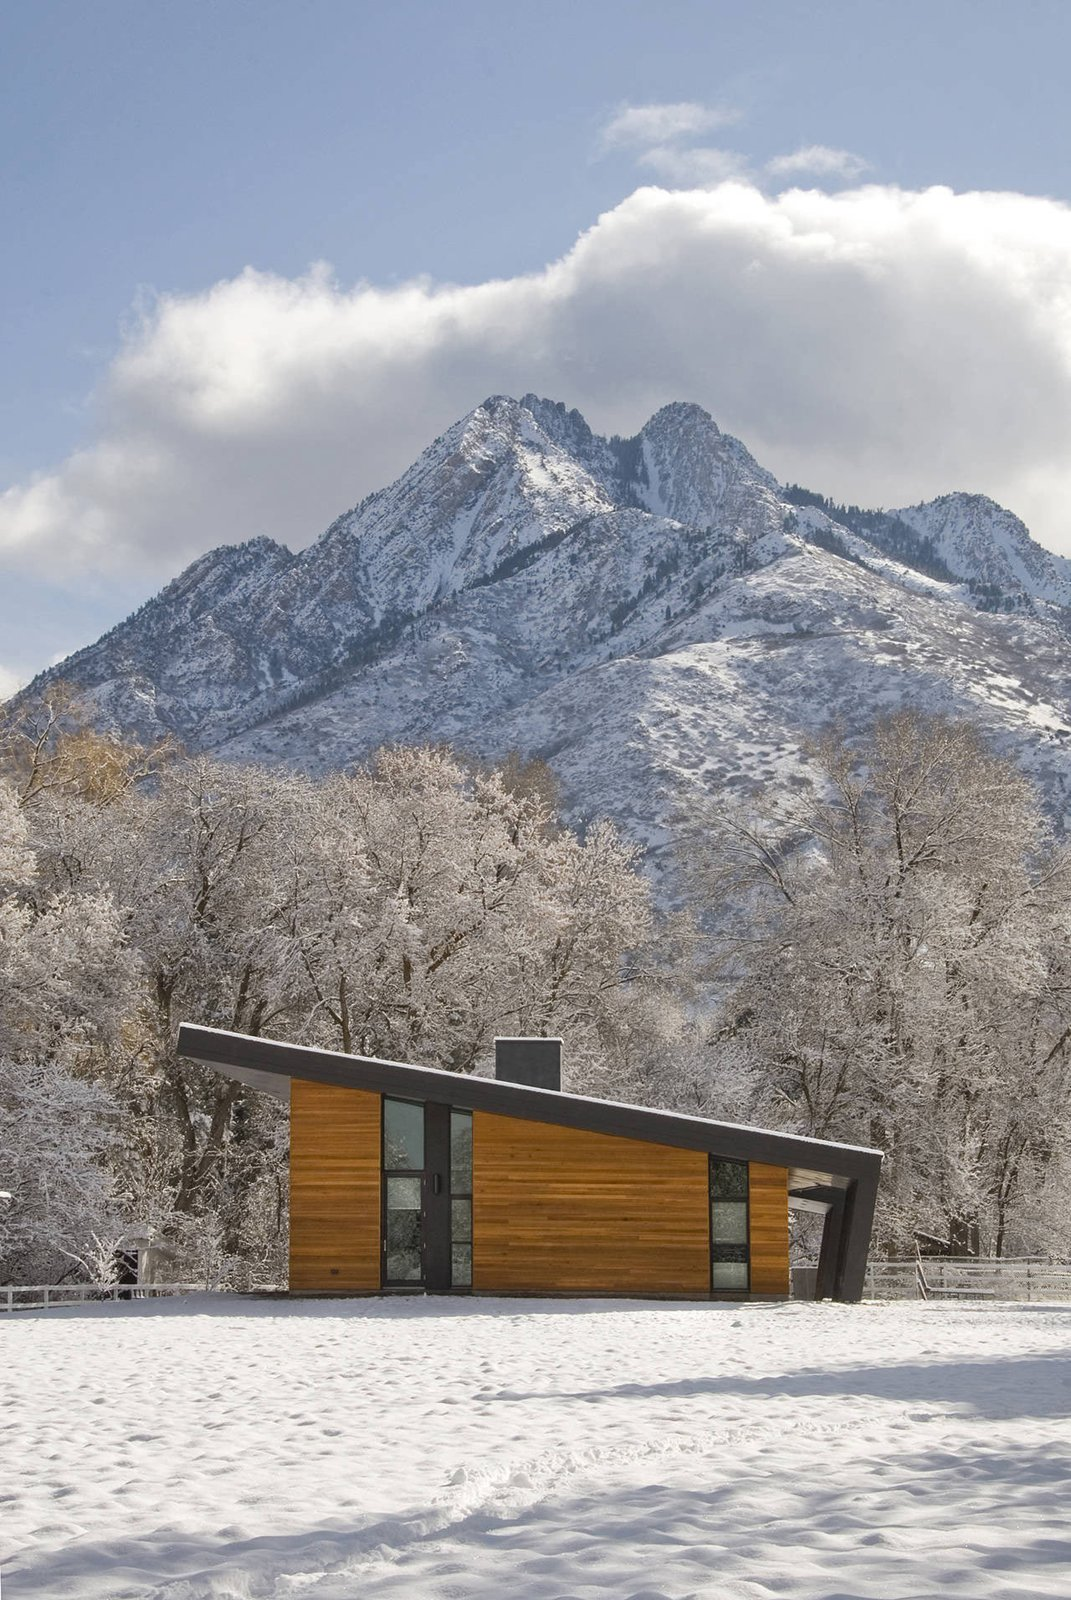 Pasture Project is built on a pasture in the shadows of Mt. Olympus in Holladay, Utah by Imbue Design. With a focus on using minimal energy, the home's living space is situated with a north/south orientation to aid in winter heat gain and summer protection.  Photo 10 of 11 in 10 Modern Wintry Cabins We'd Be Happy to Hole Up In